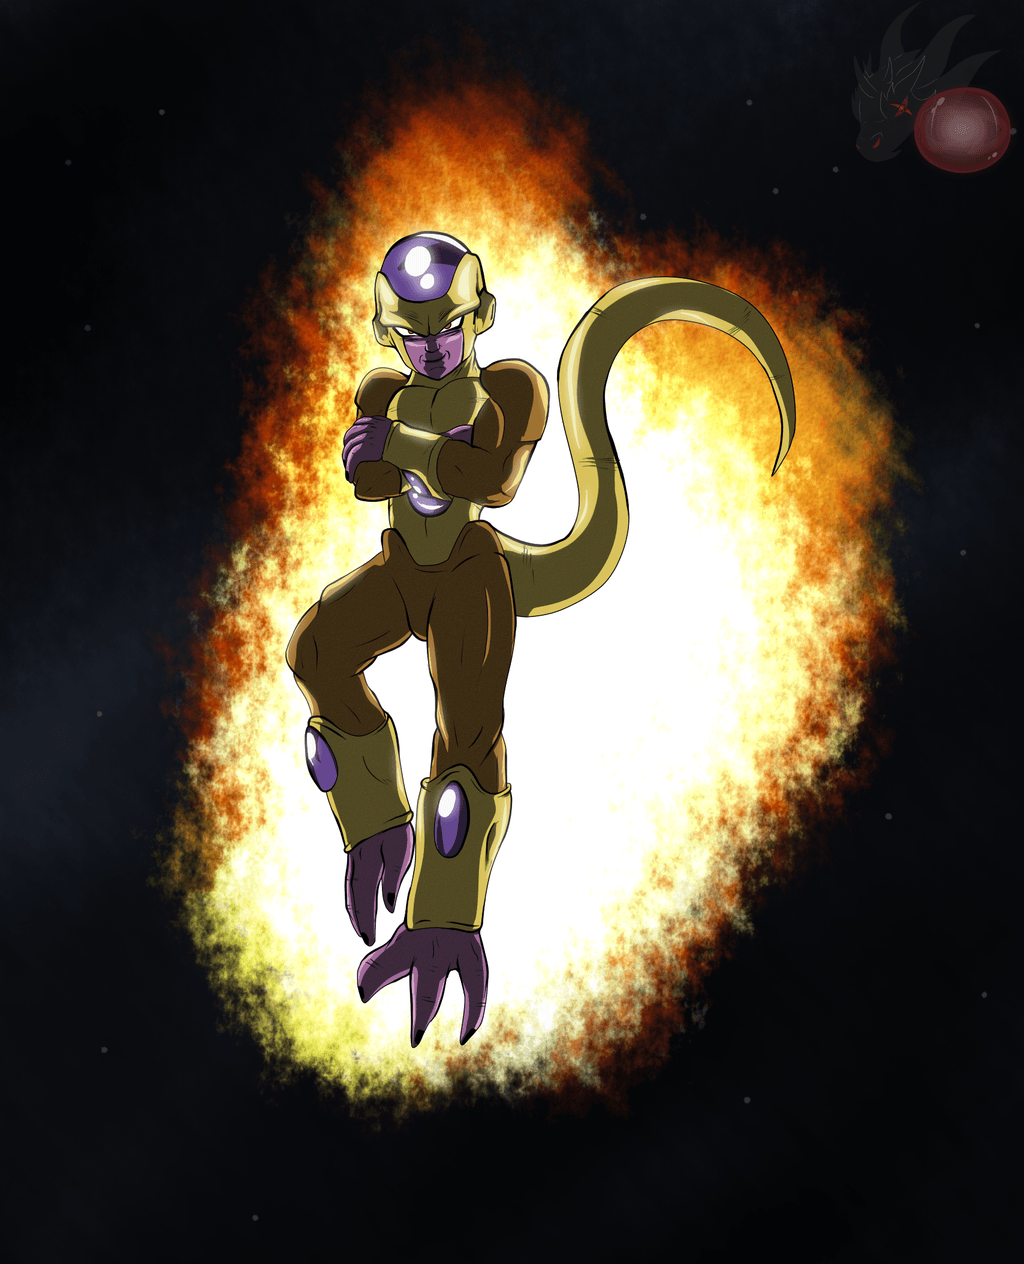 dbz frieza wallpaper - photo #17